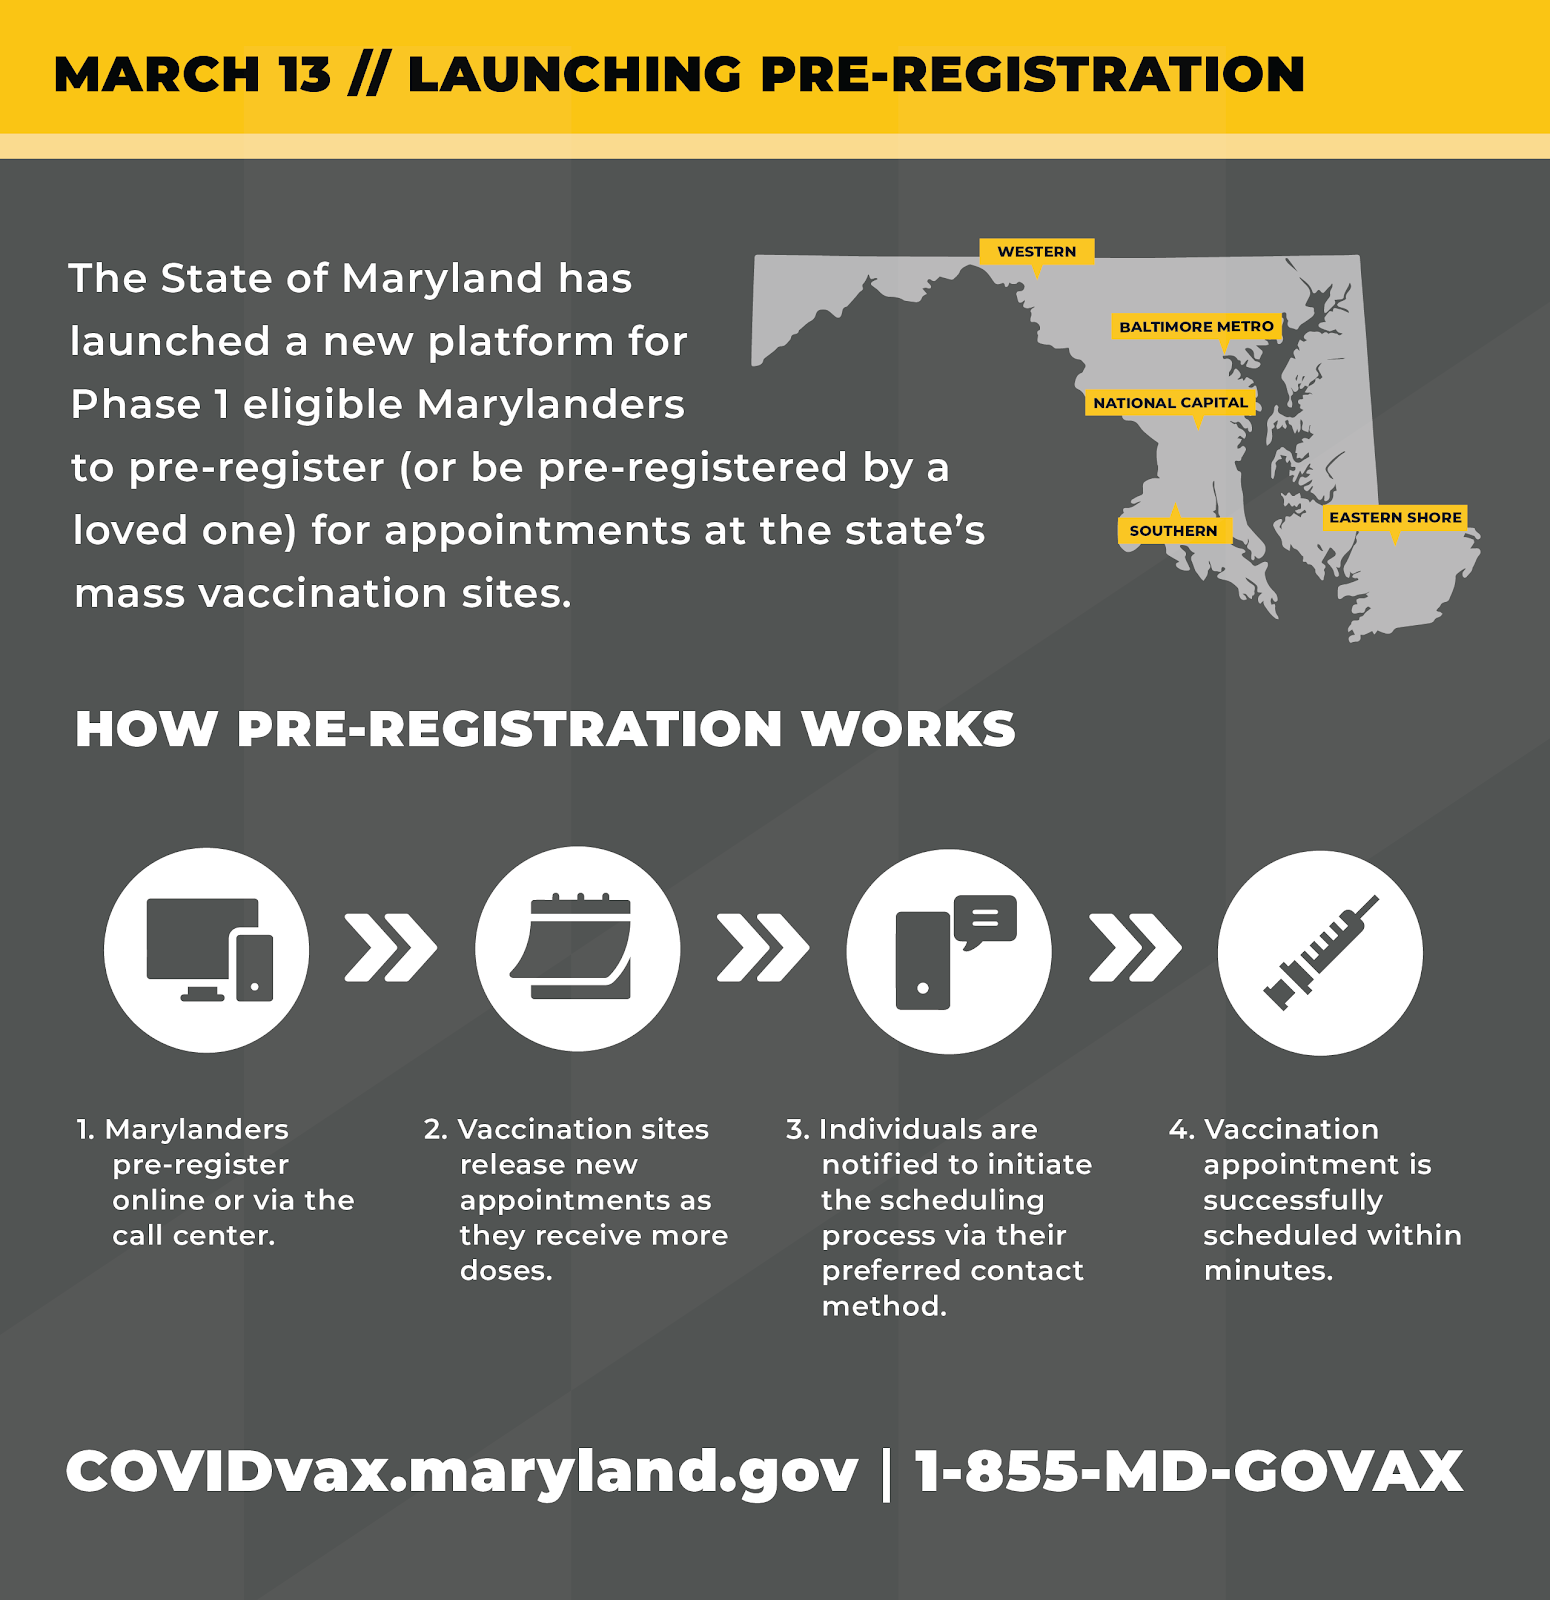 Graphic shows pre-registration process. Can be done online or via call center. Individuals notified of available appointments.